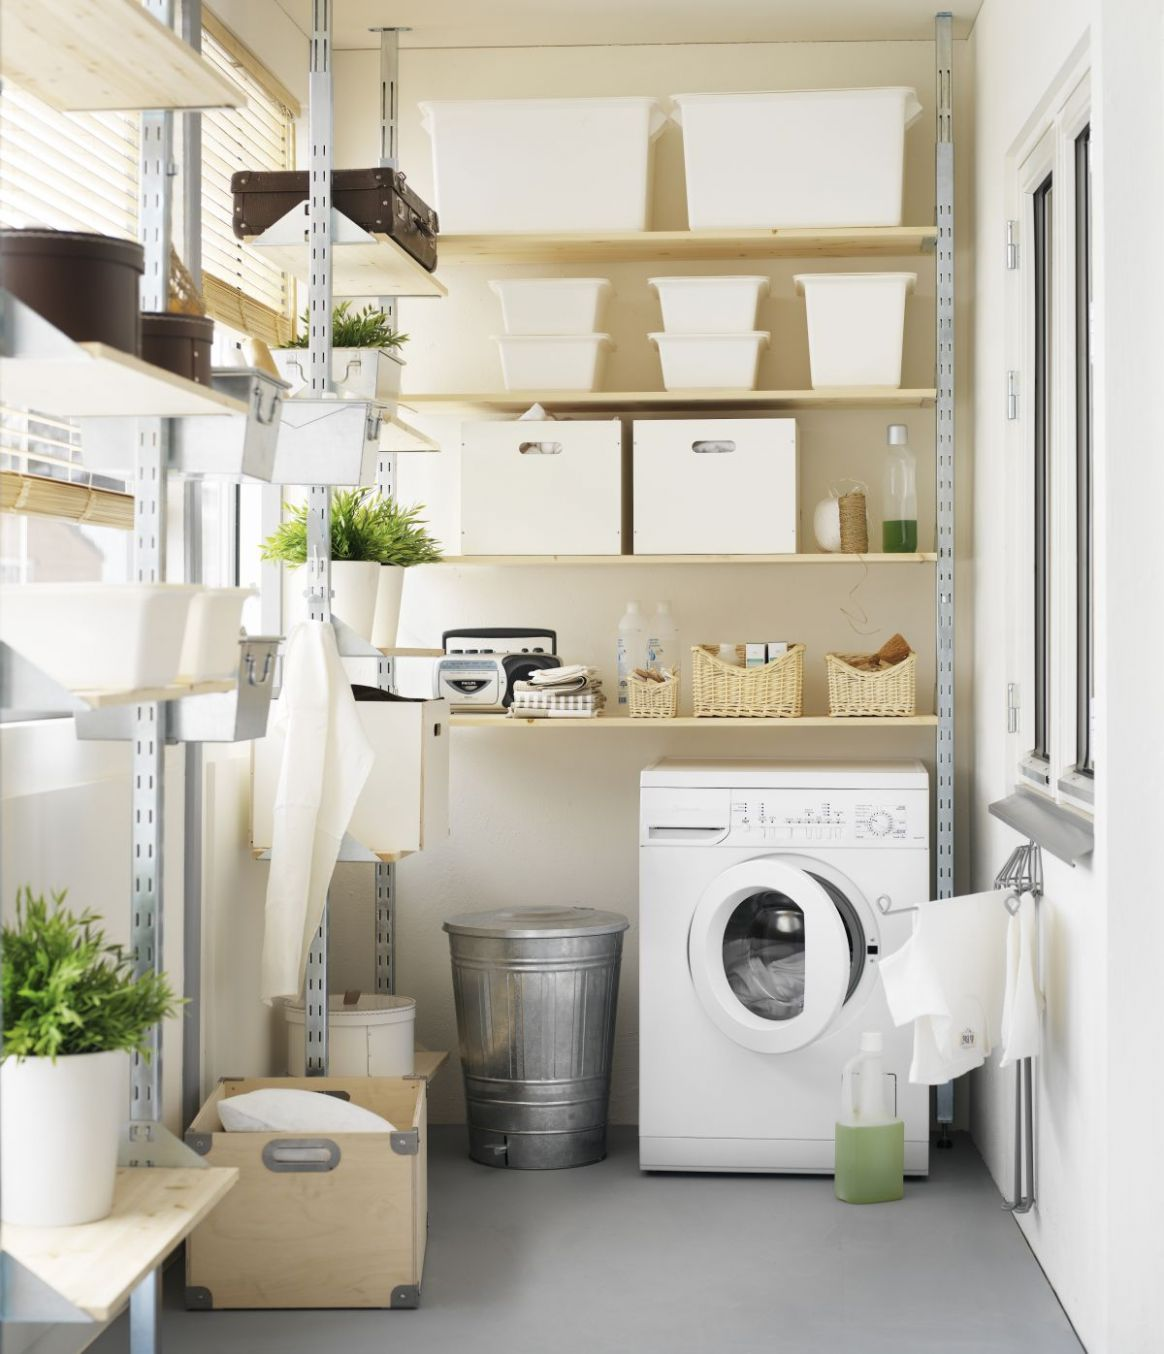 Laundry room storage ideas: 10 ways to make your utility useful ..